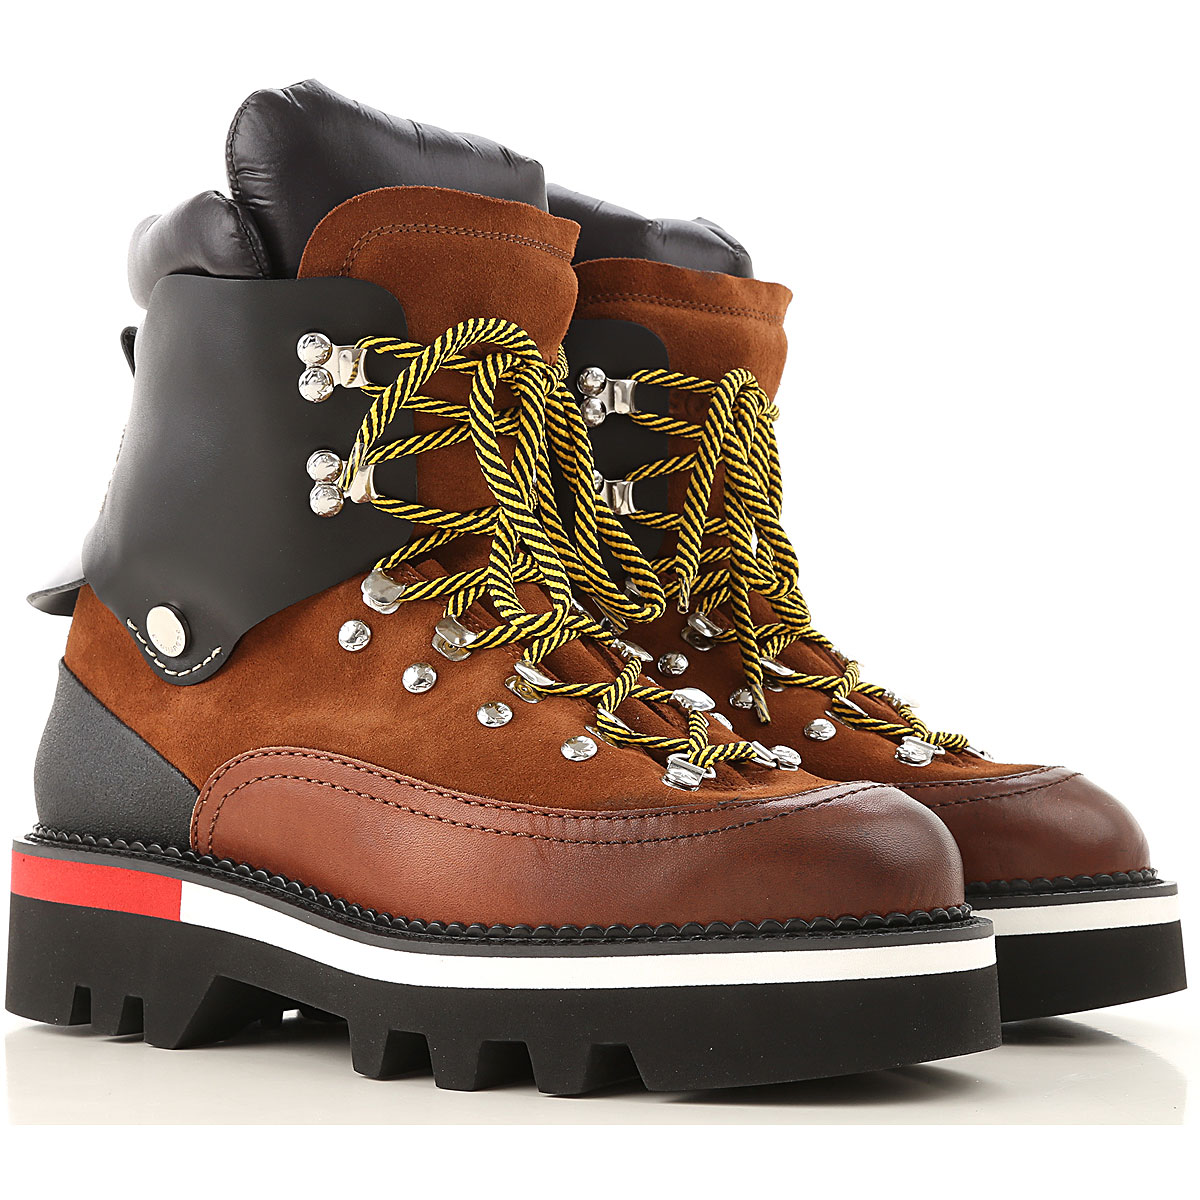 Dsquared2 Boots for Men, Booties On Sale, Brown, Leather, 2019, 7.5 9